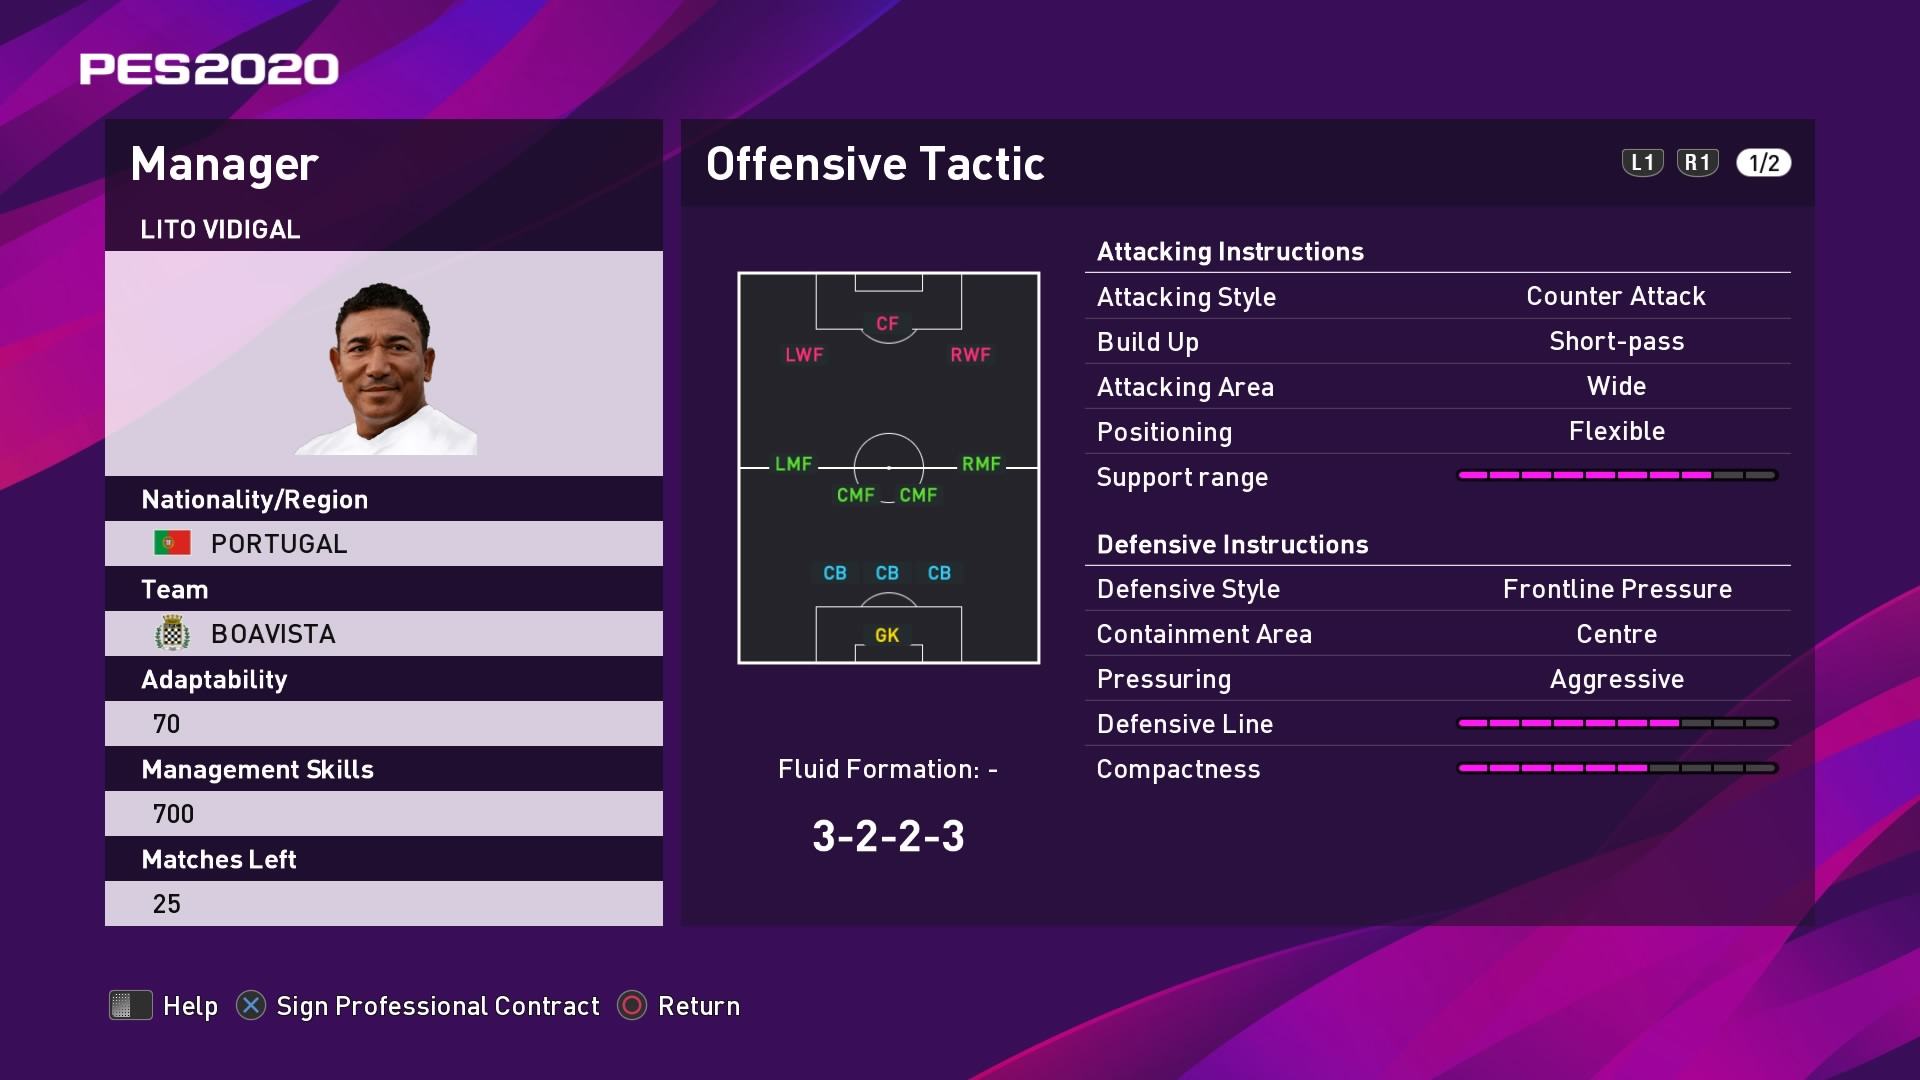 Lito Vidigal Offensive Tactic in PES 2020 myClub